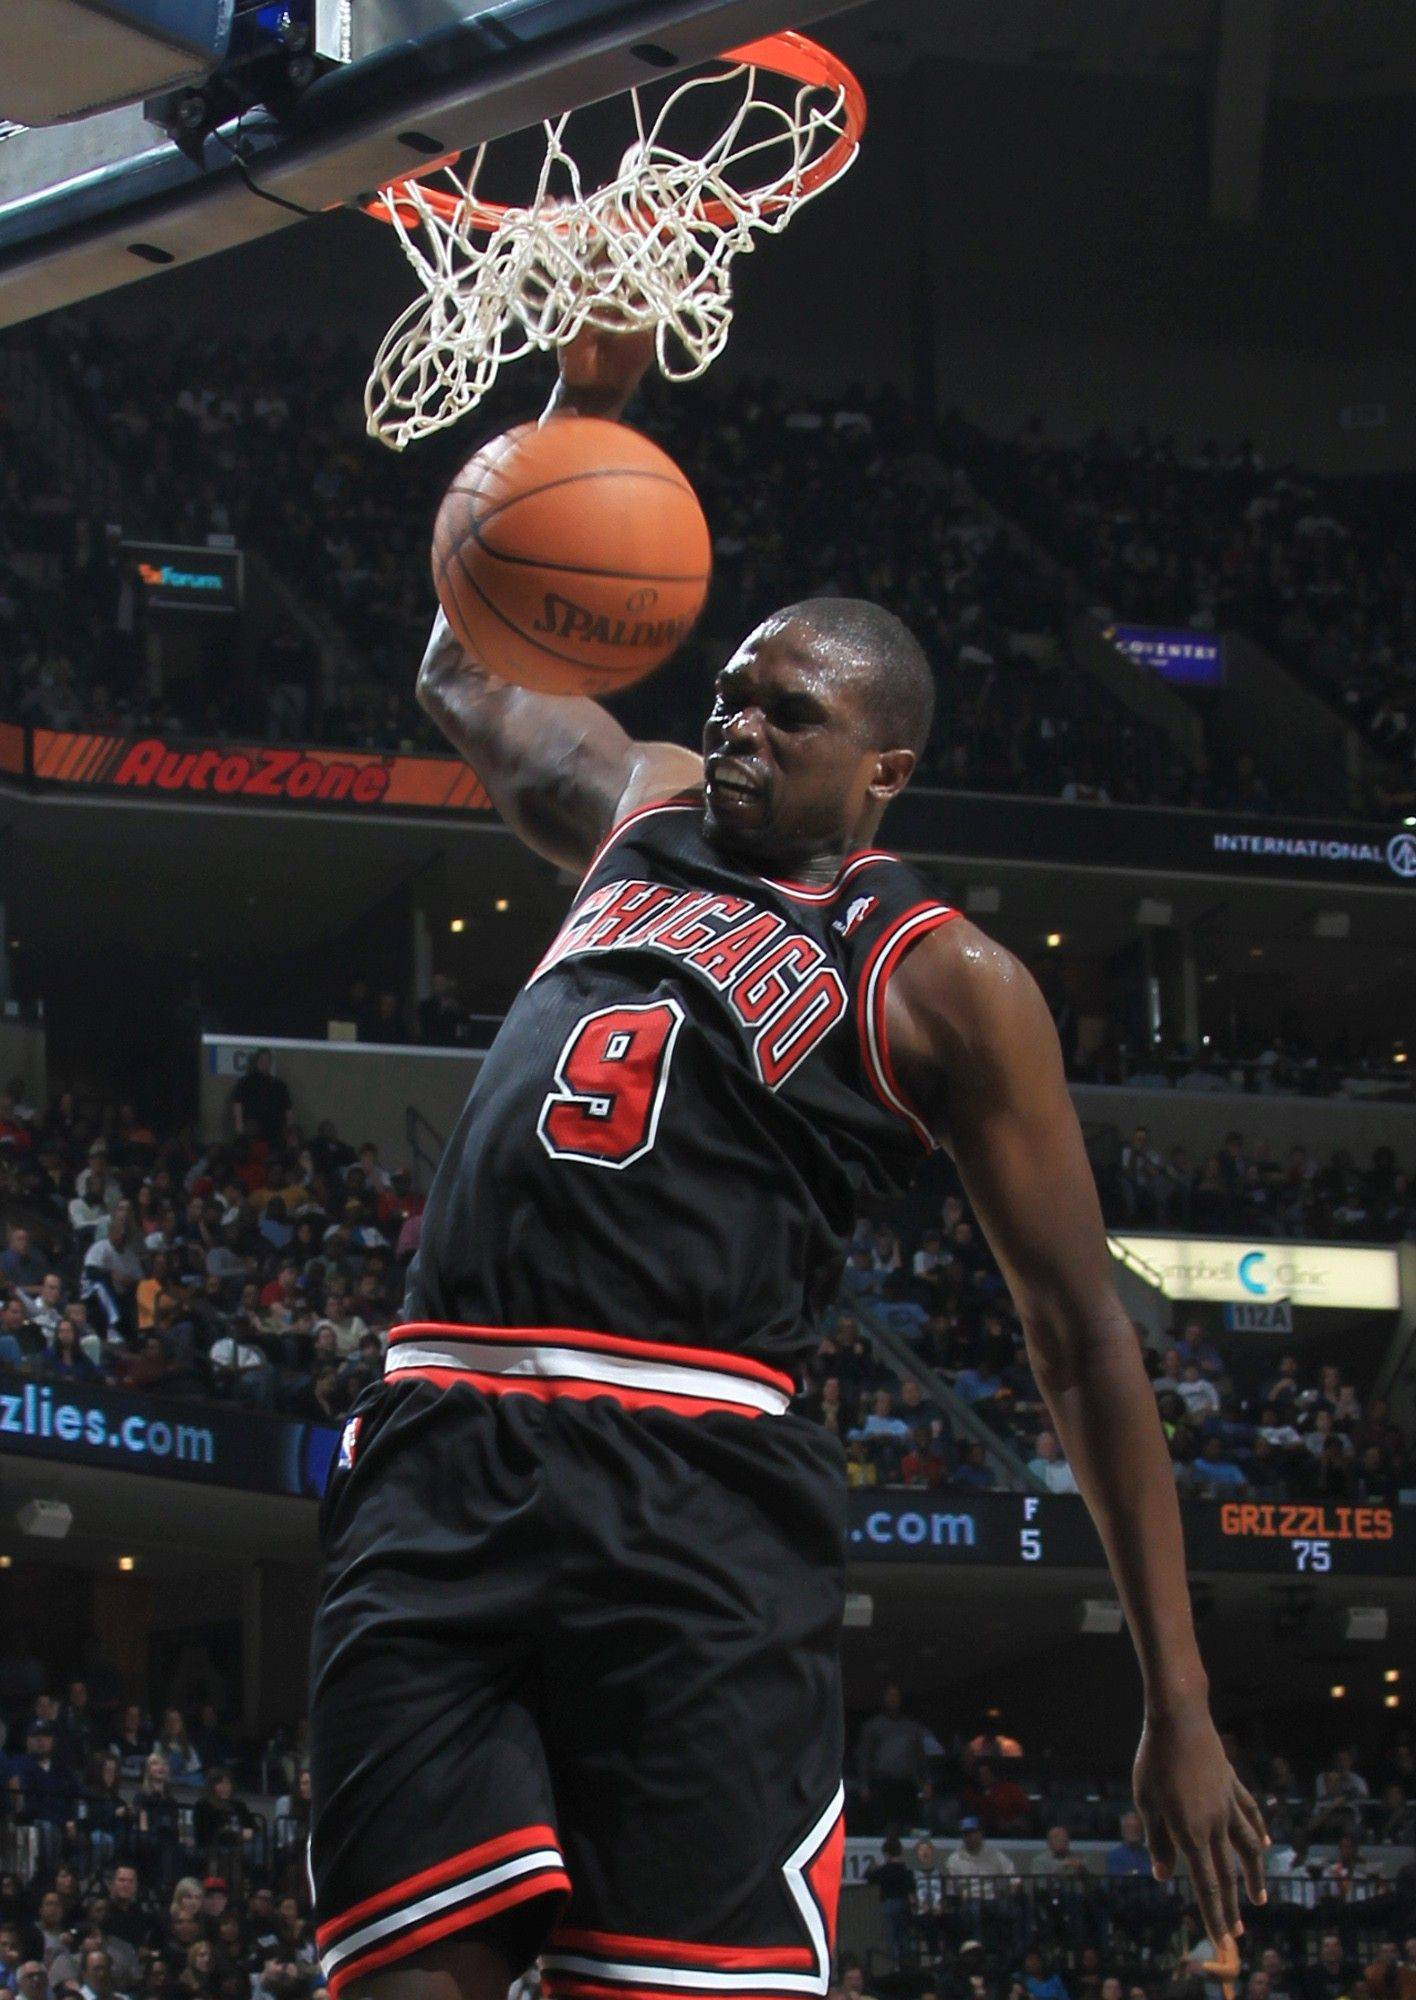 Bulls forward Luol Deng missed the playoffs when he had surgery on his right wrist in 2005. Now his left wrist has a torn ligament but he plans on rehabbing it without surgery.